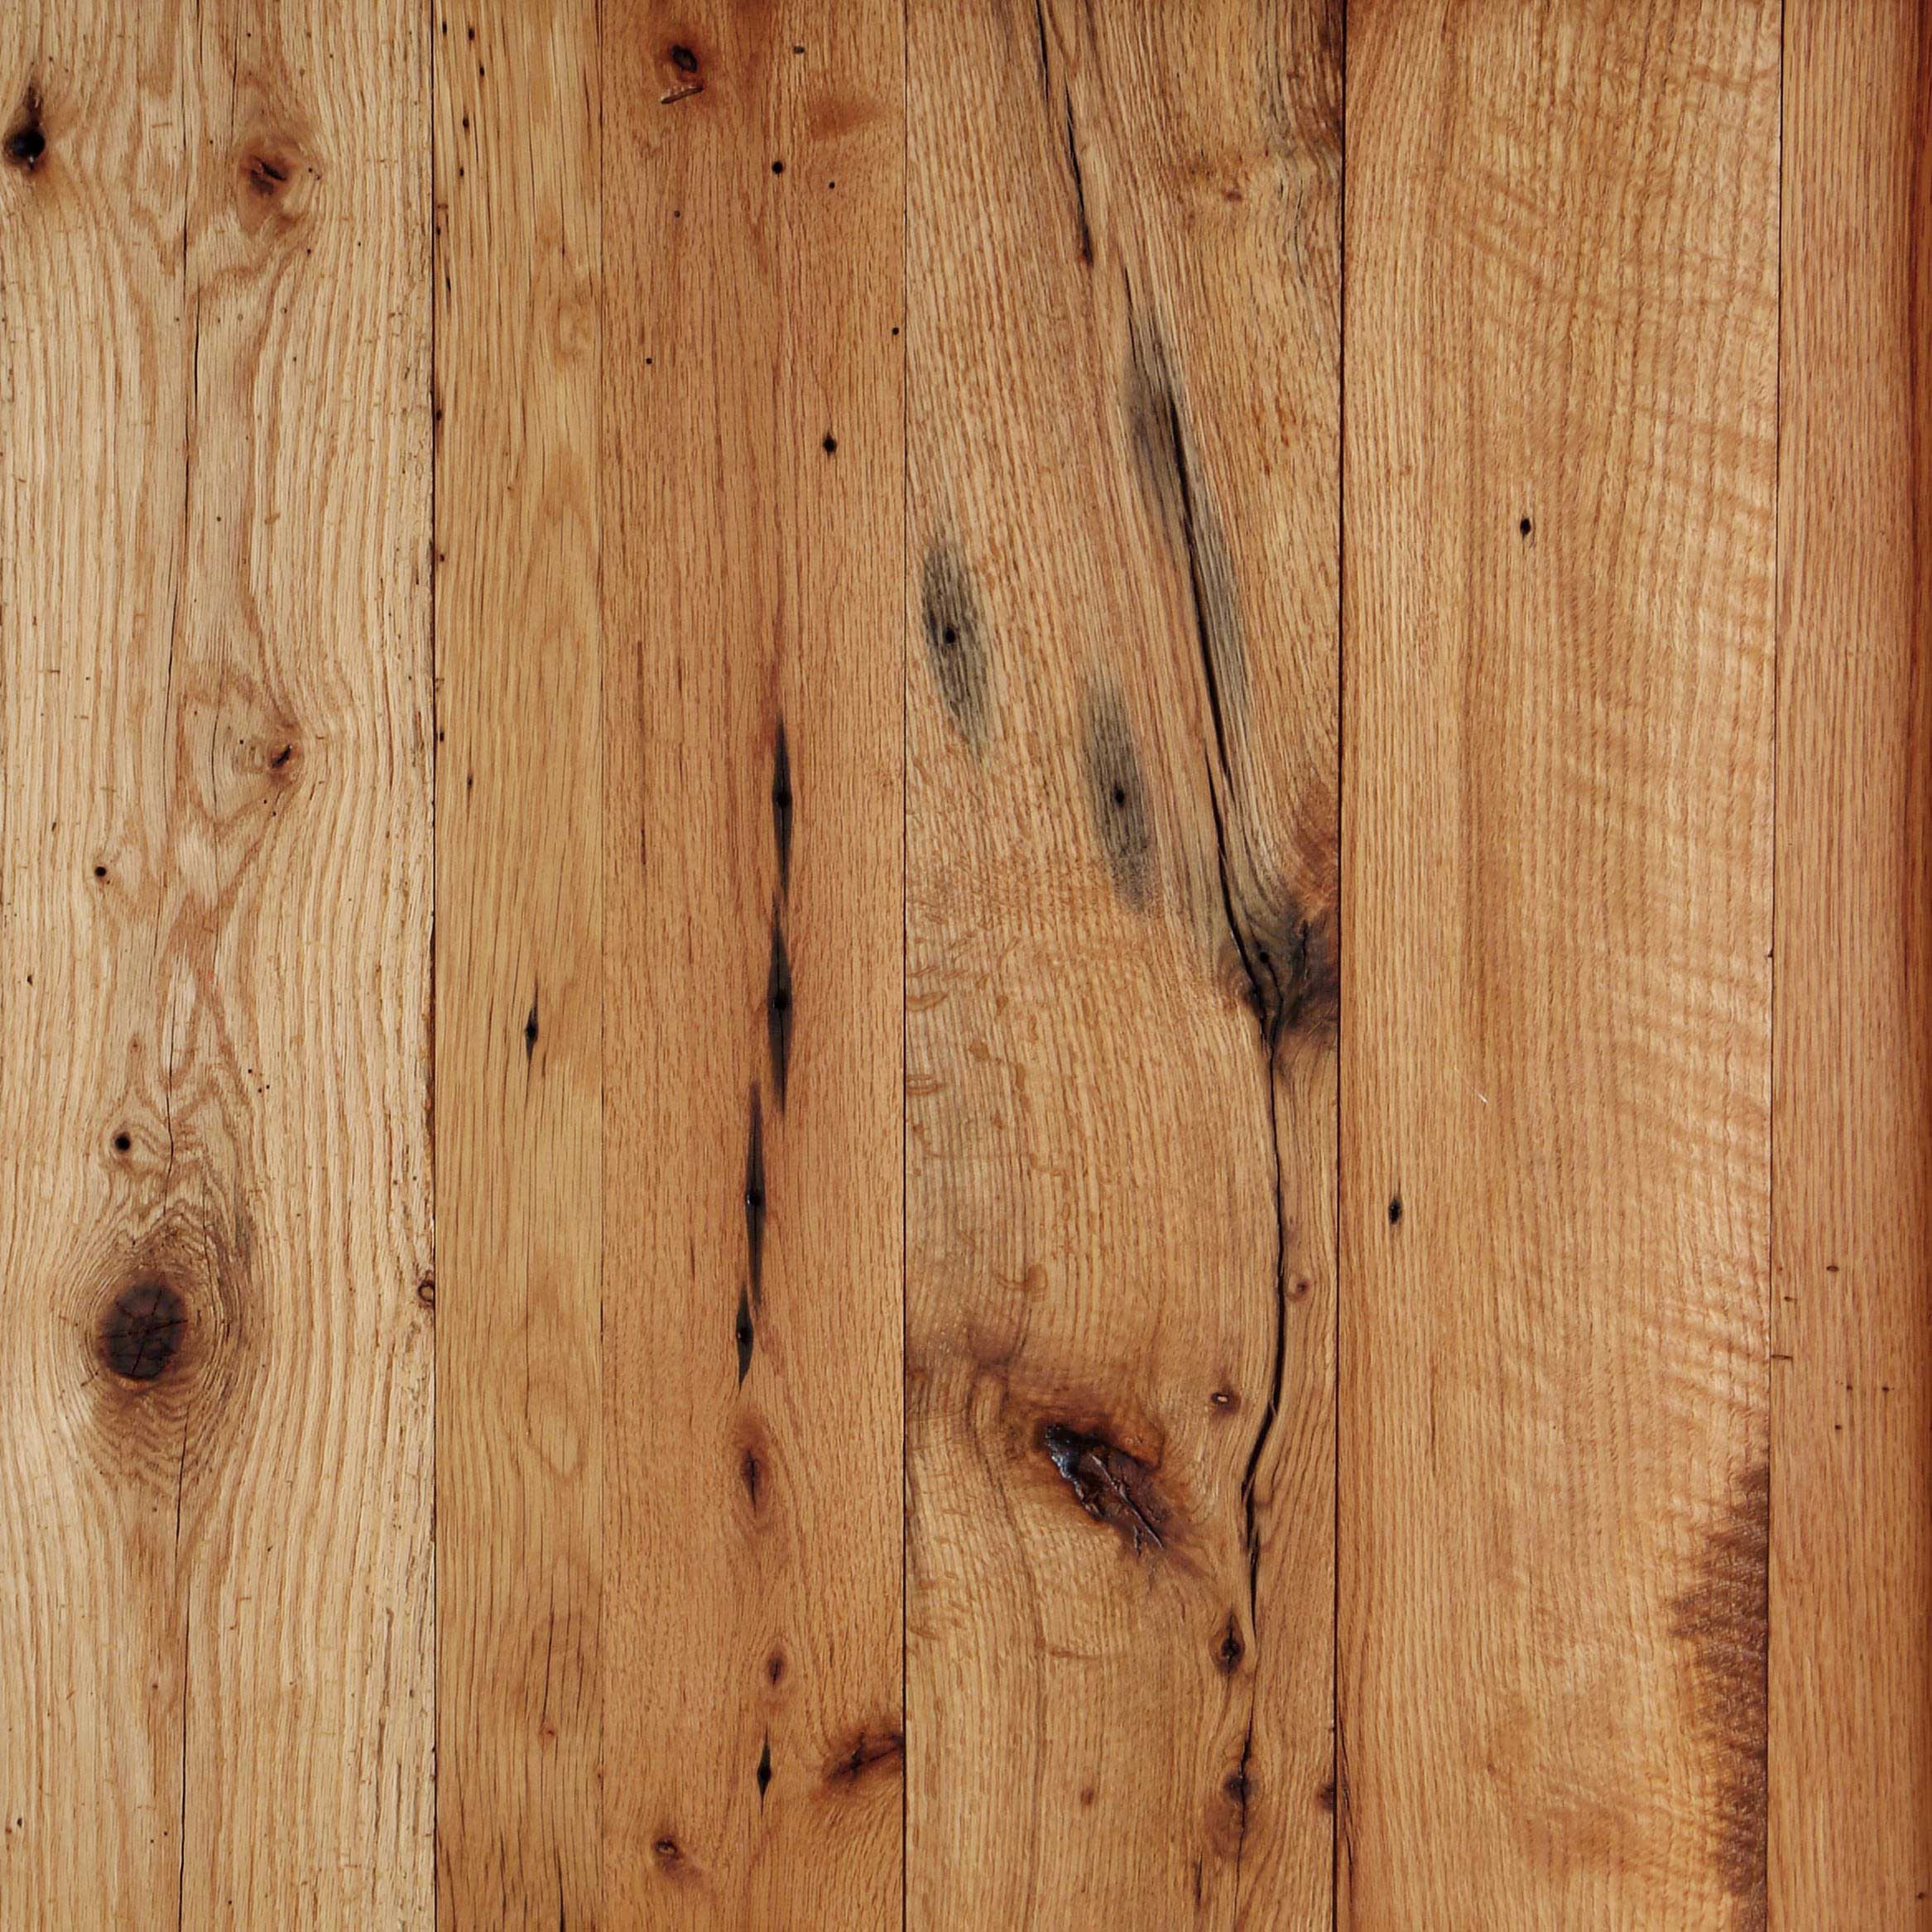 3 4 inch oak hardwood flooring of longleaf lumber reclaimed red white oak wood inside reclaimed salvaged antique red oak flooring wide boards knots